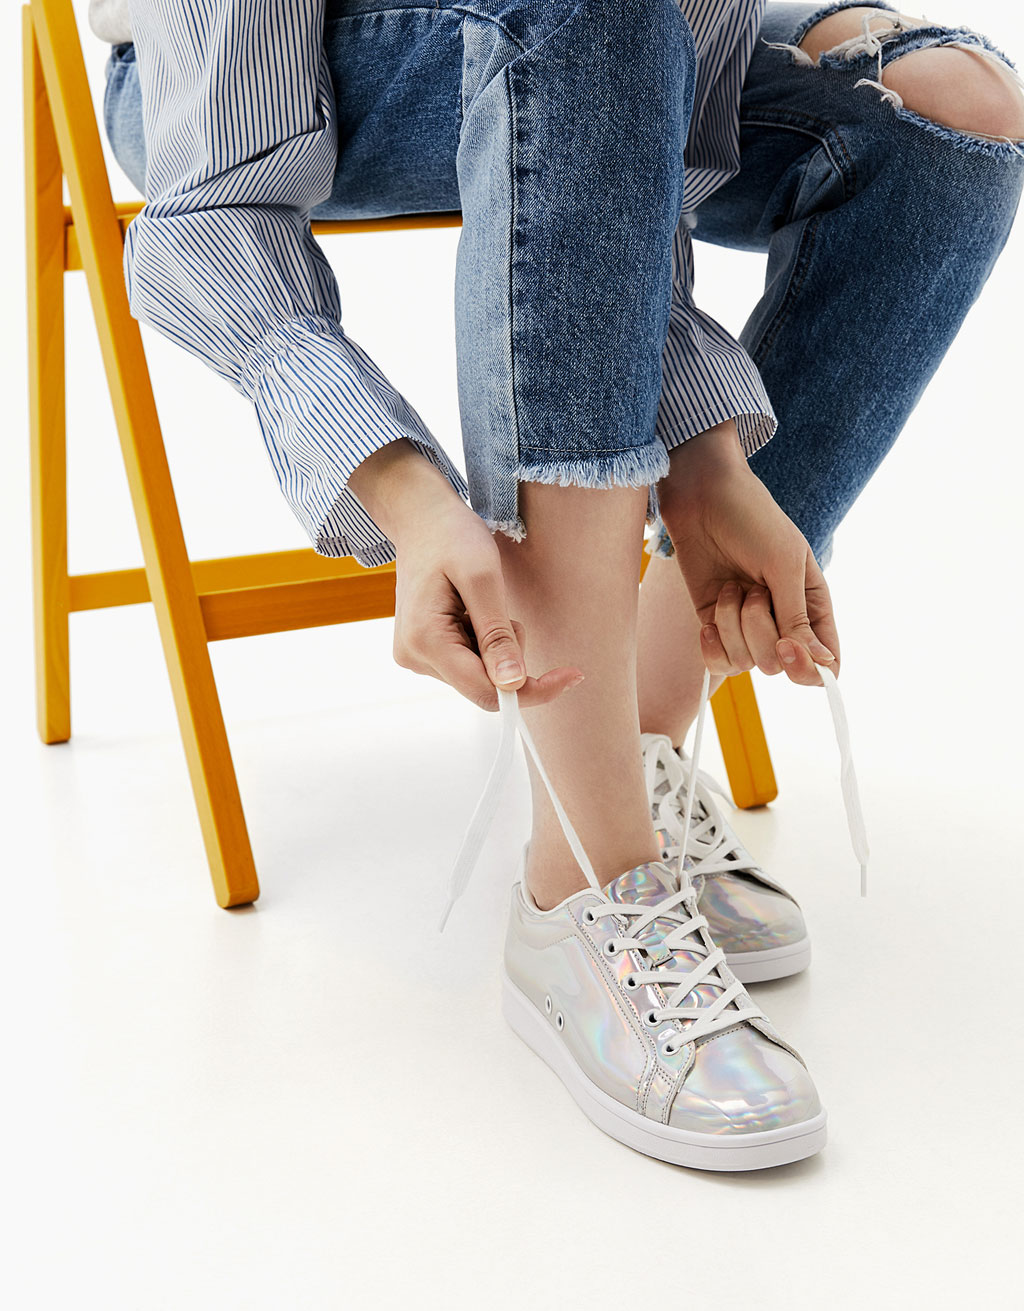 Lace-up shiny iridescent sneakers